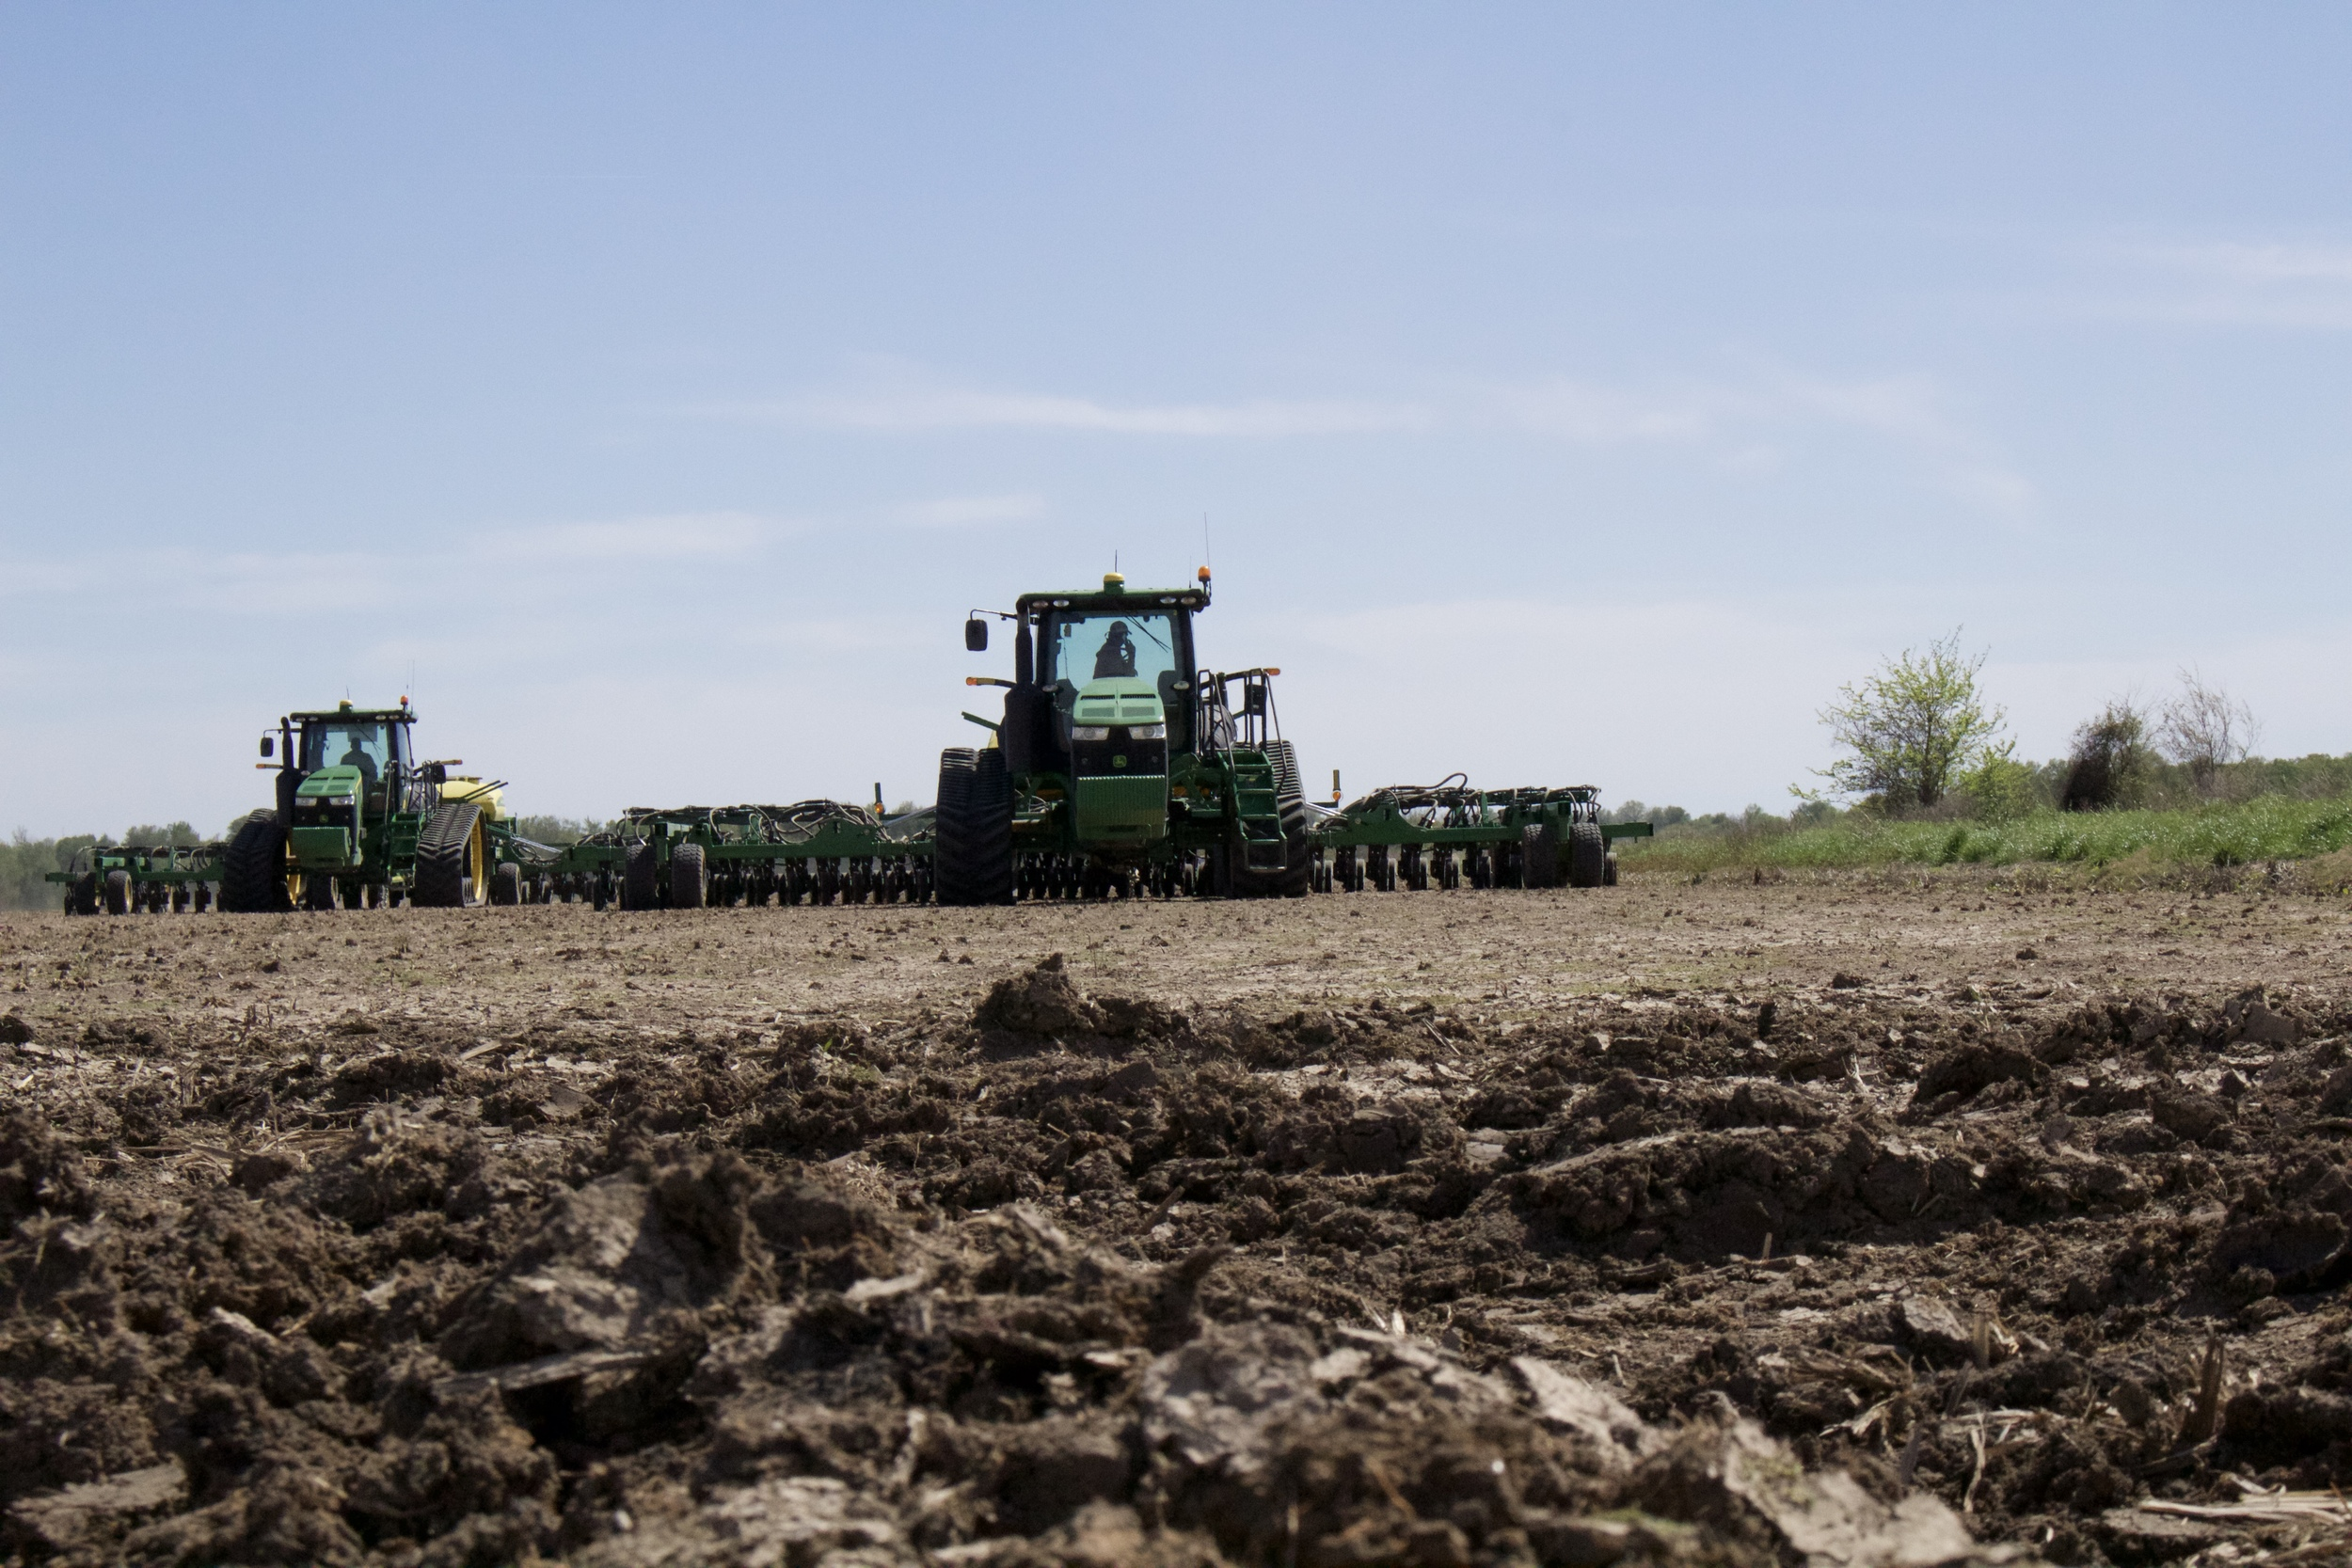 Tractors planting rice                                                                                                                                                                  Photo Credit:  Morgan Baugh